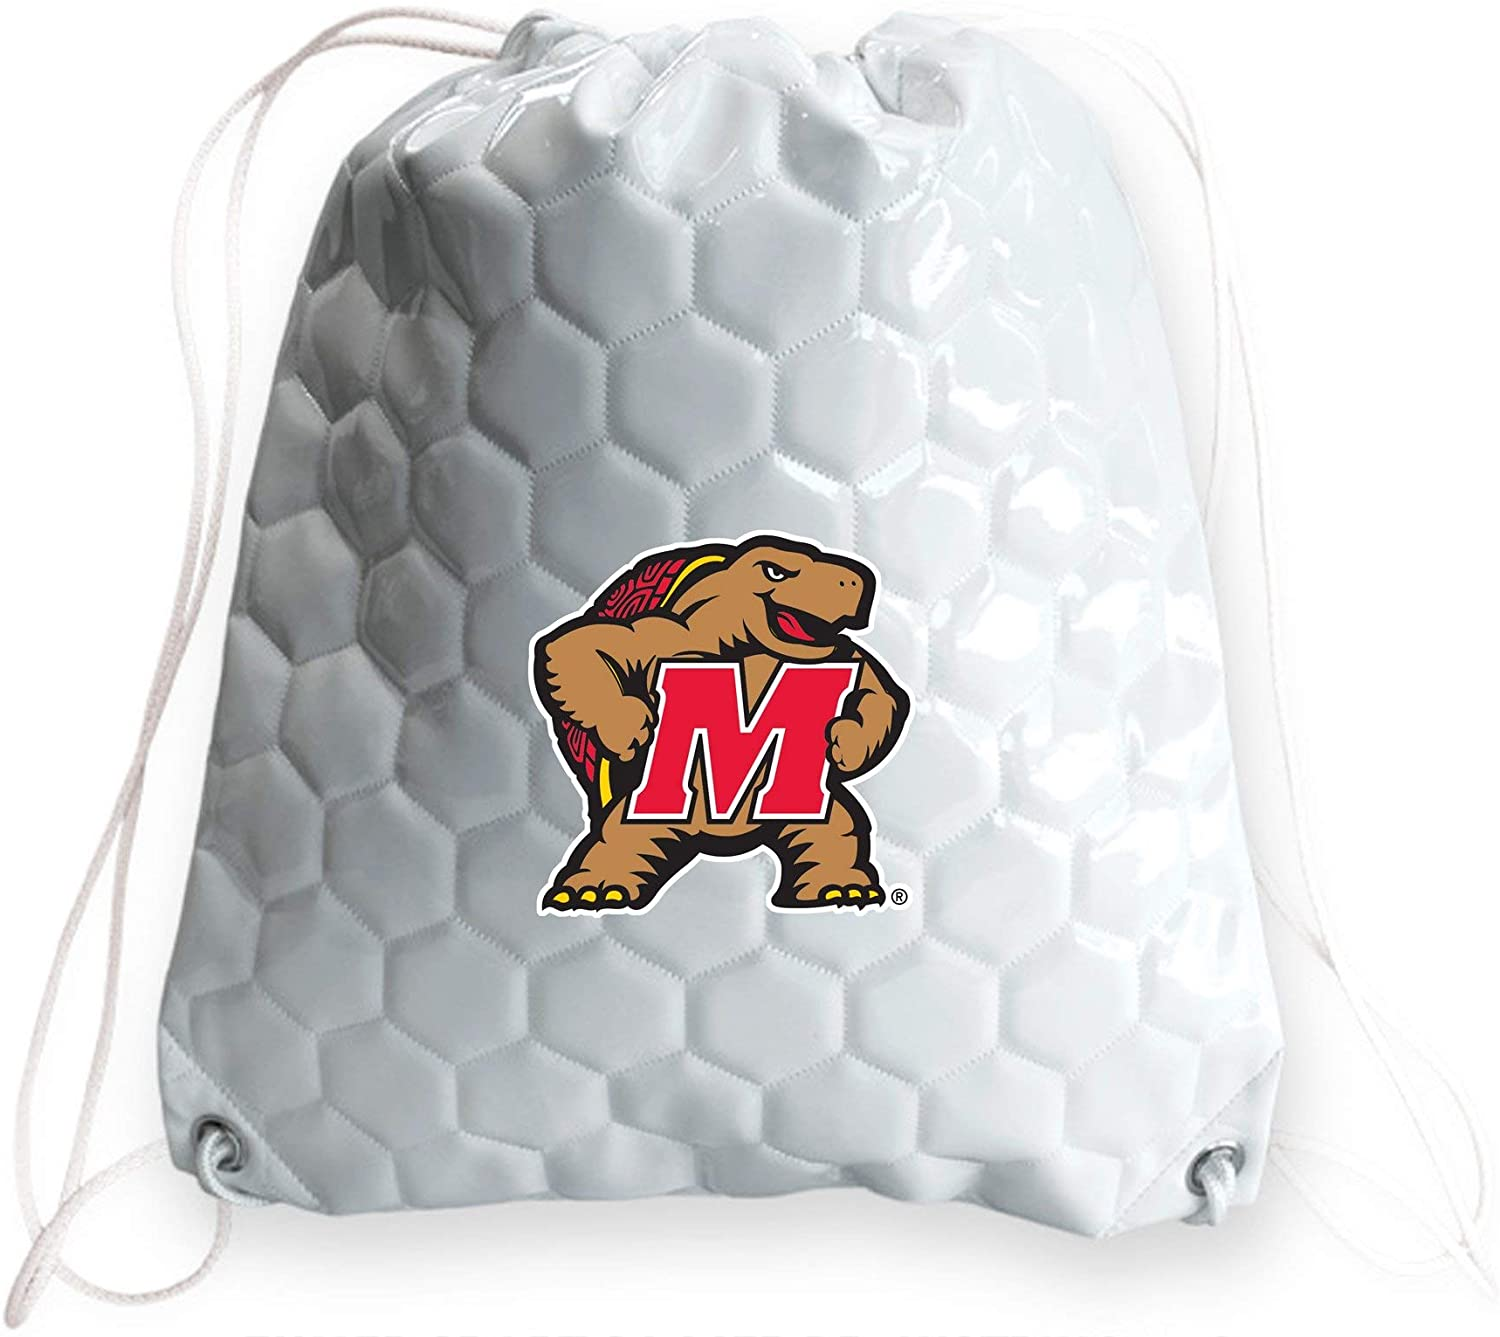 Zumer Sport Maryland Terrapins Soccer Ball Leather Drawstring Shoulder Backpack Bag - made from the same exact materials as a soccer ball - White